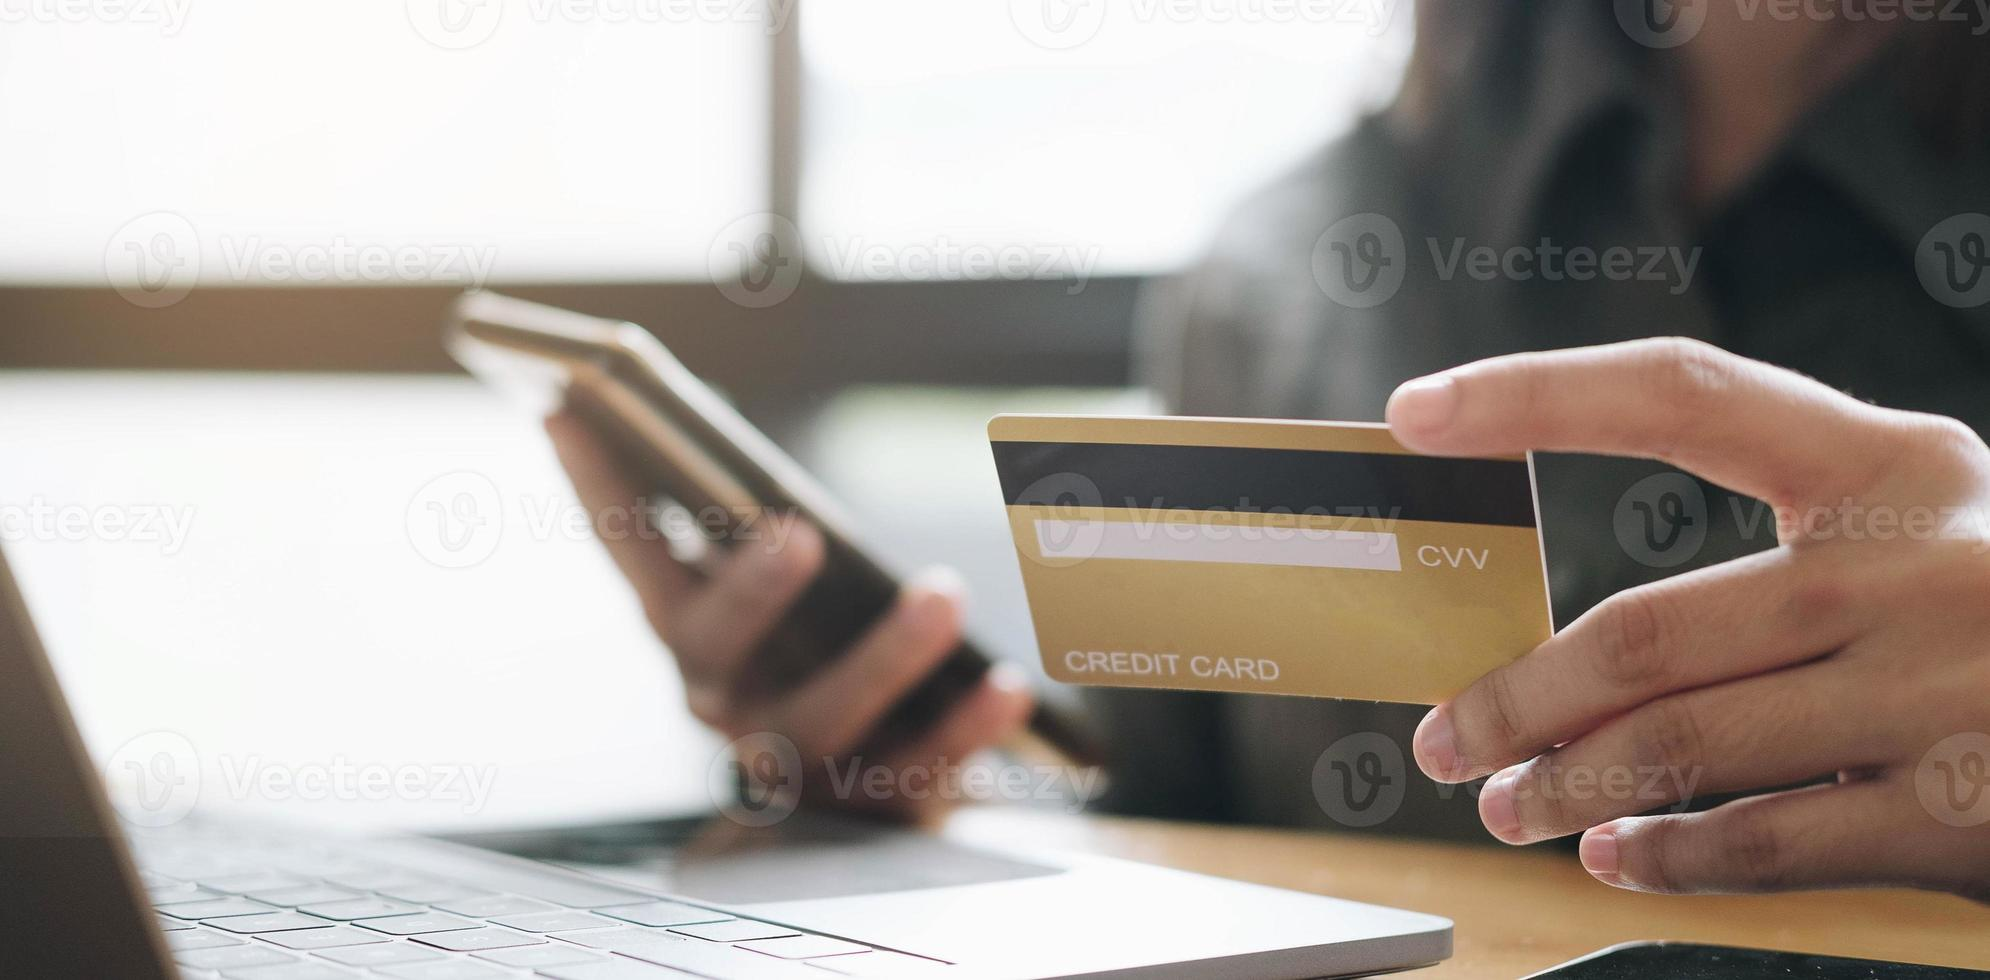 Hands holding credit card and using laptop photo